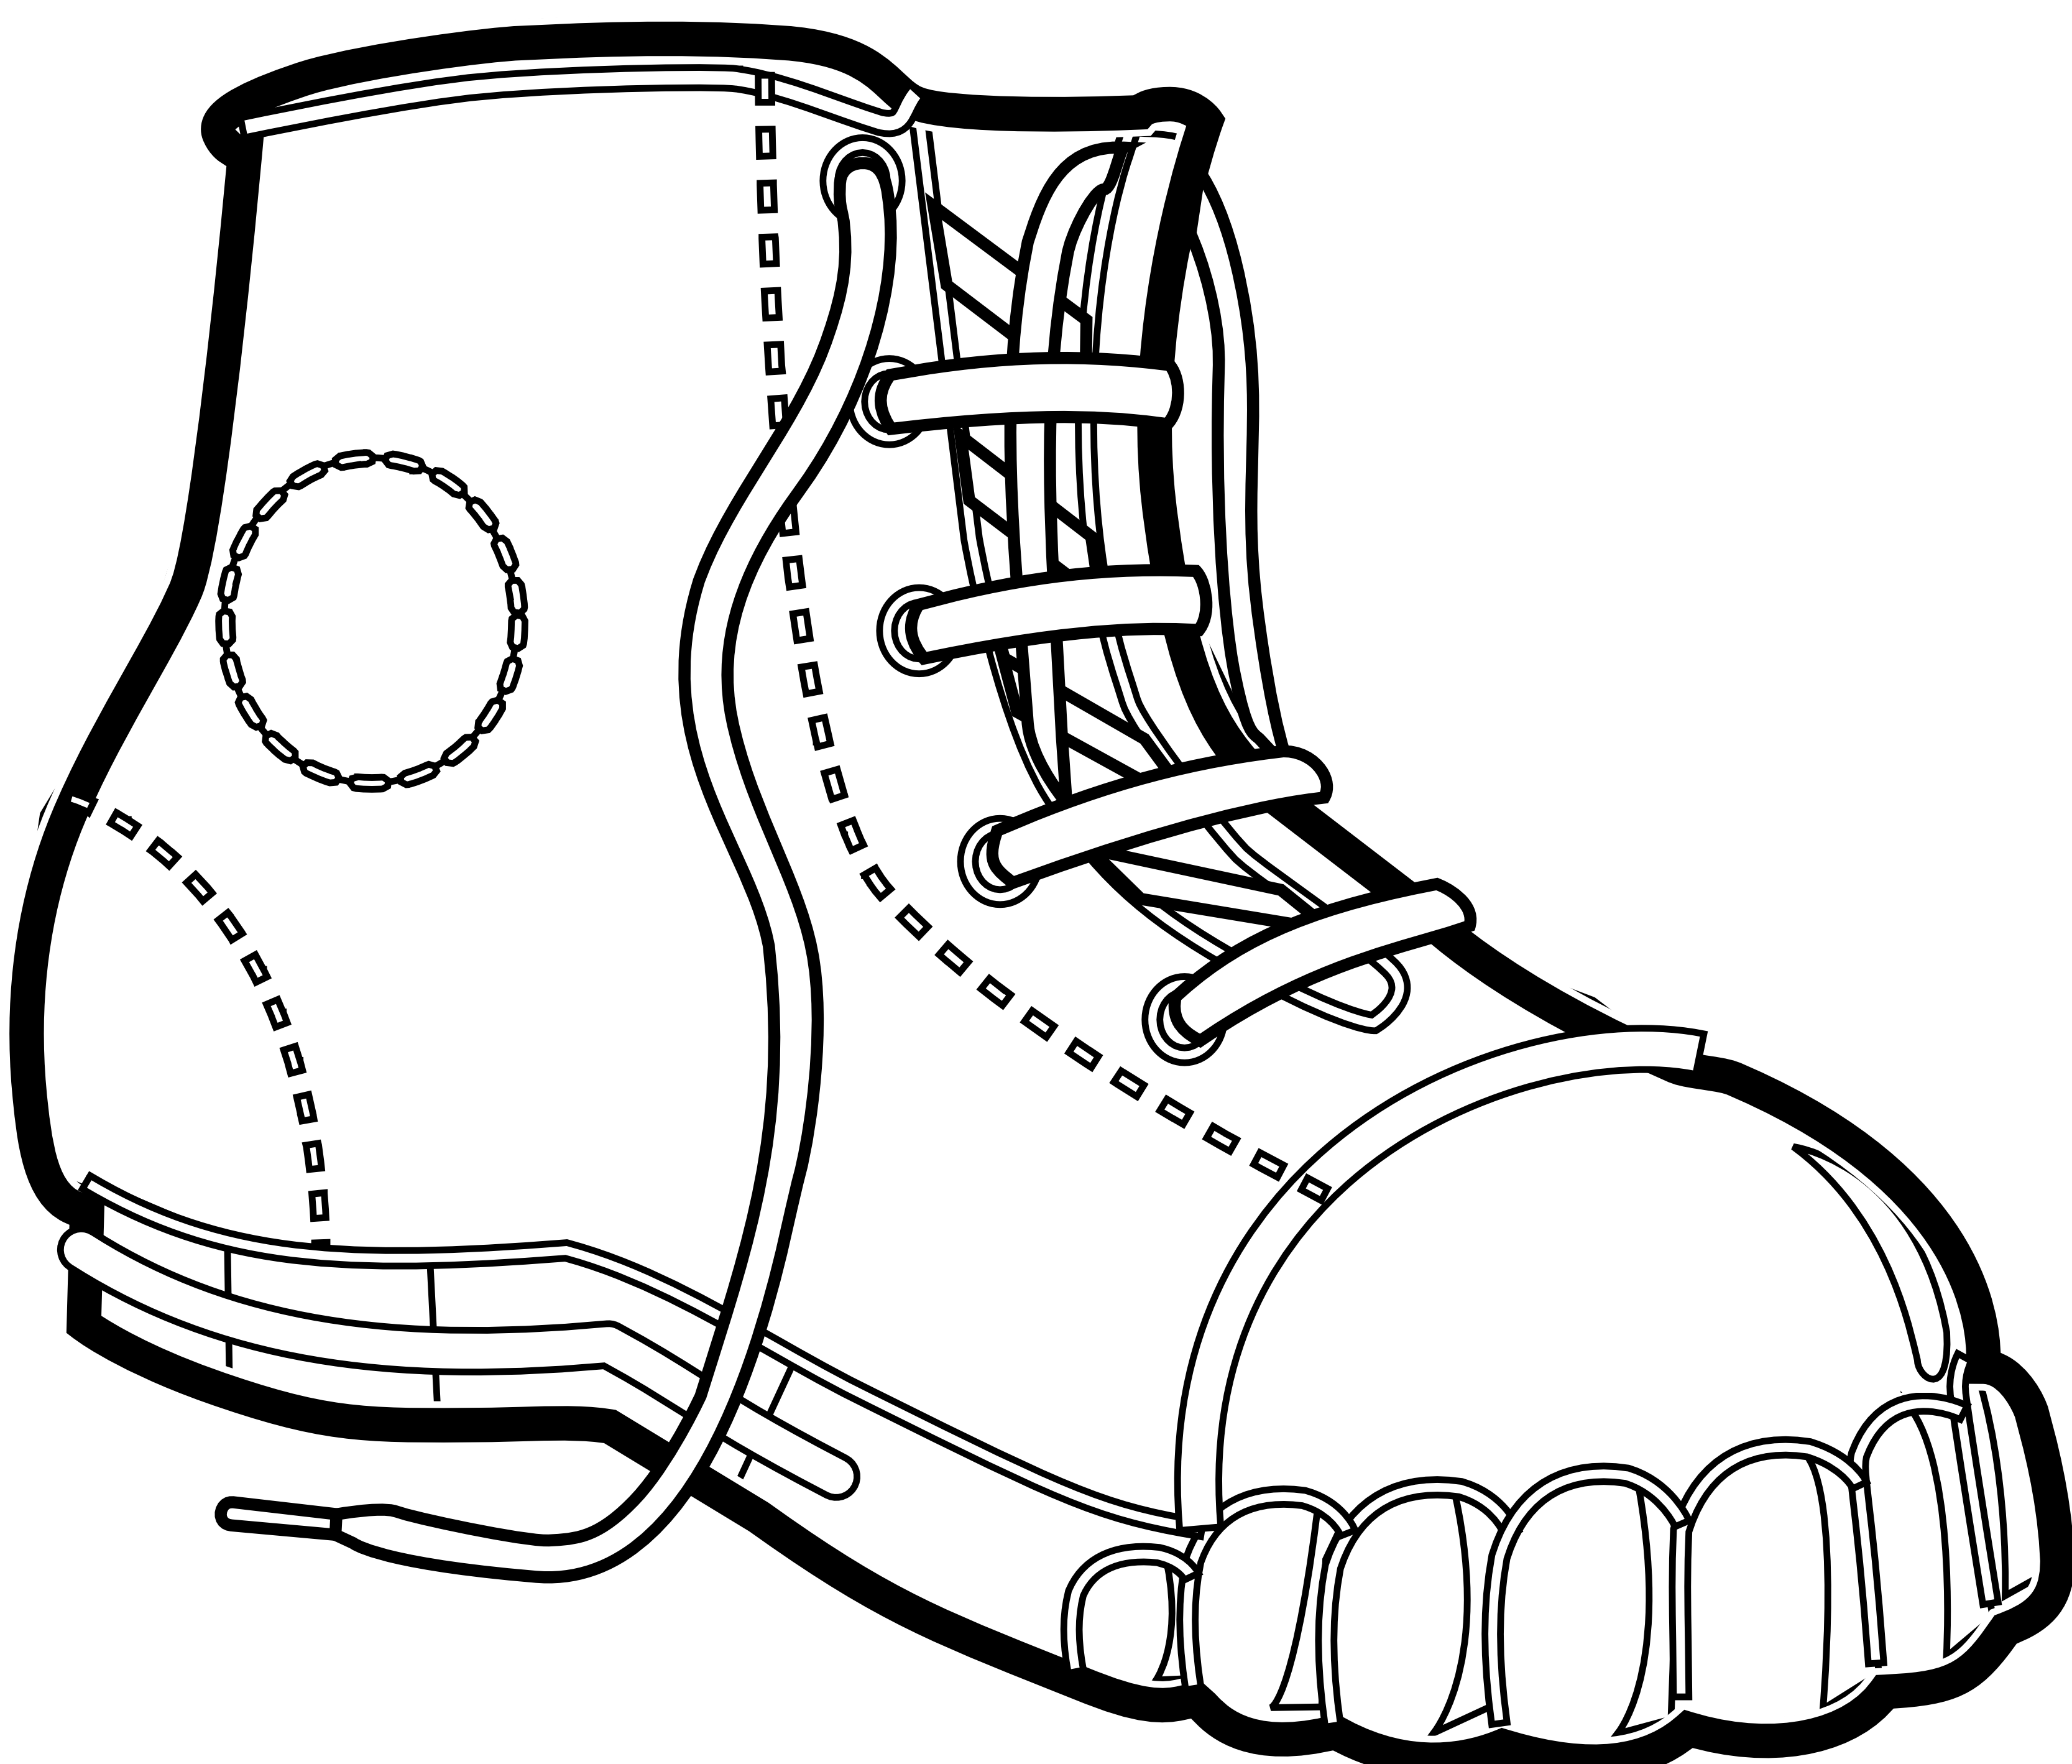 Boots coloring #3, Download drawings